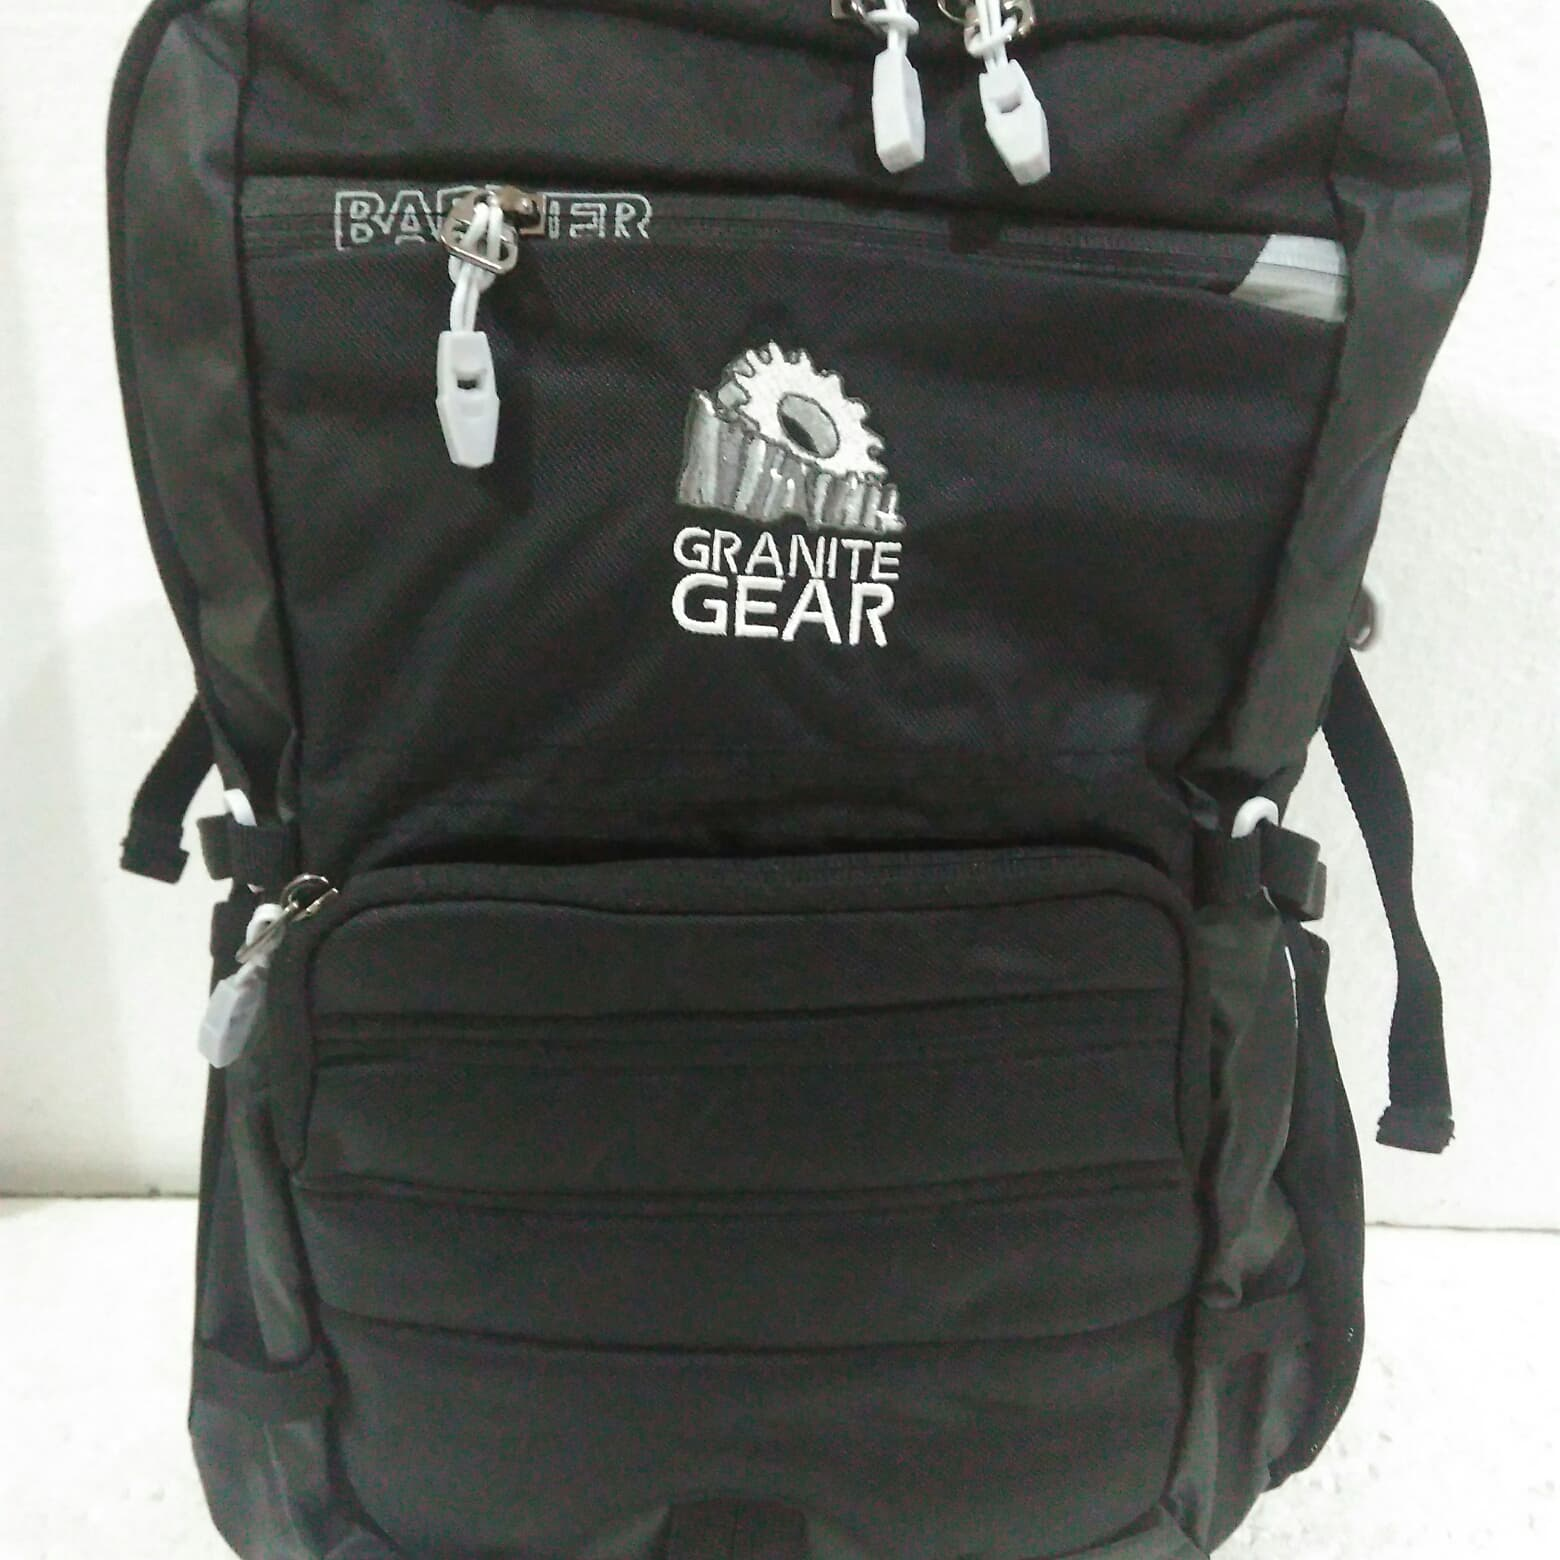 DISKON Tas ransel granite gear laptop import. tas gunung granite gear hitam fe47e07a72